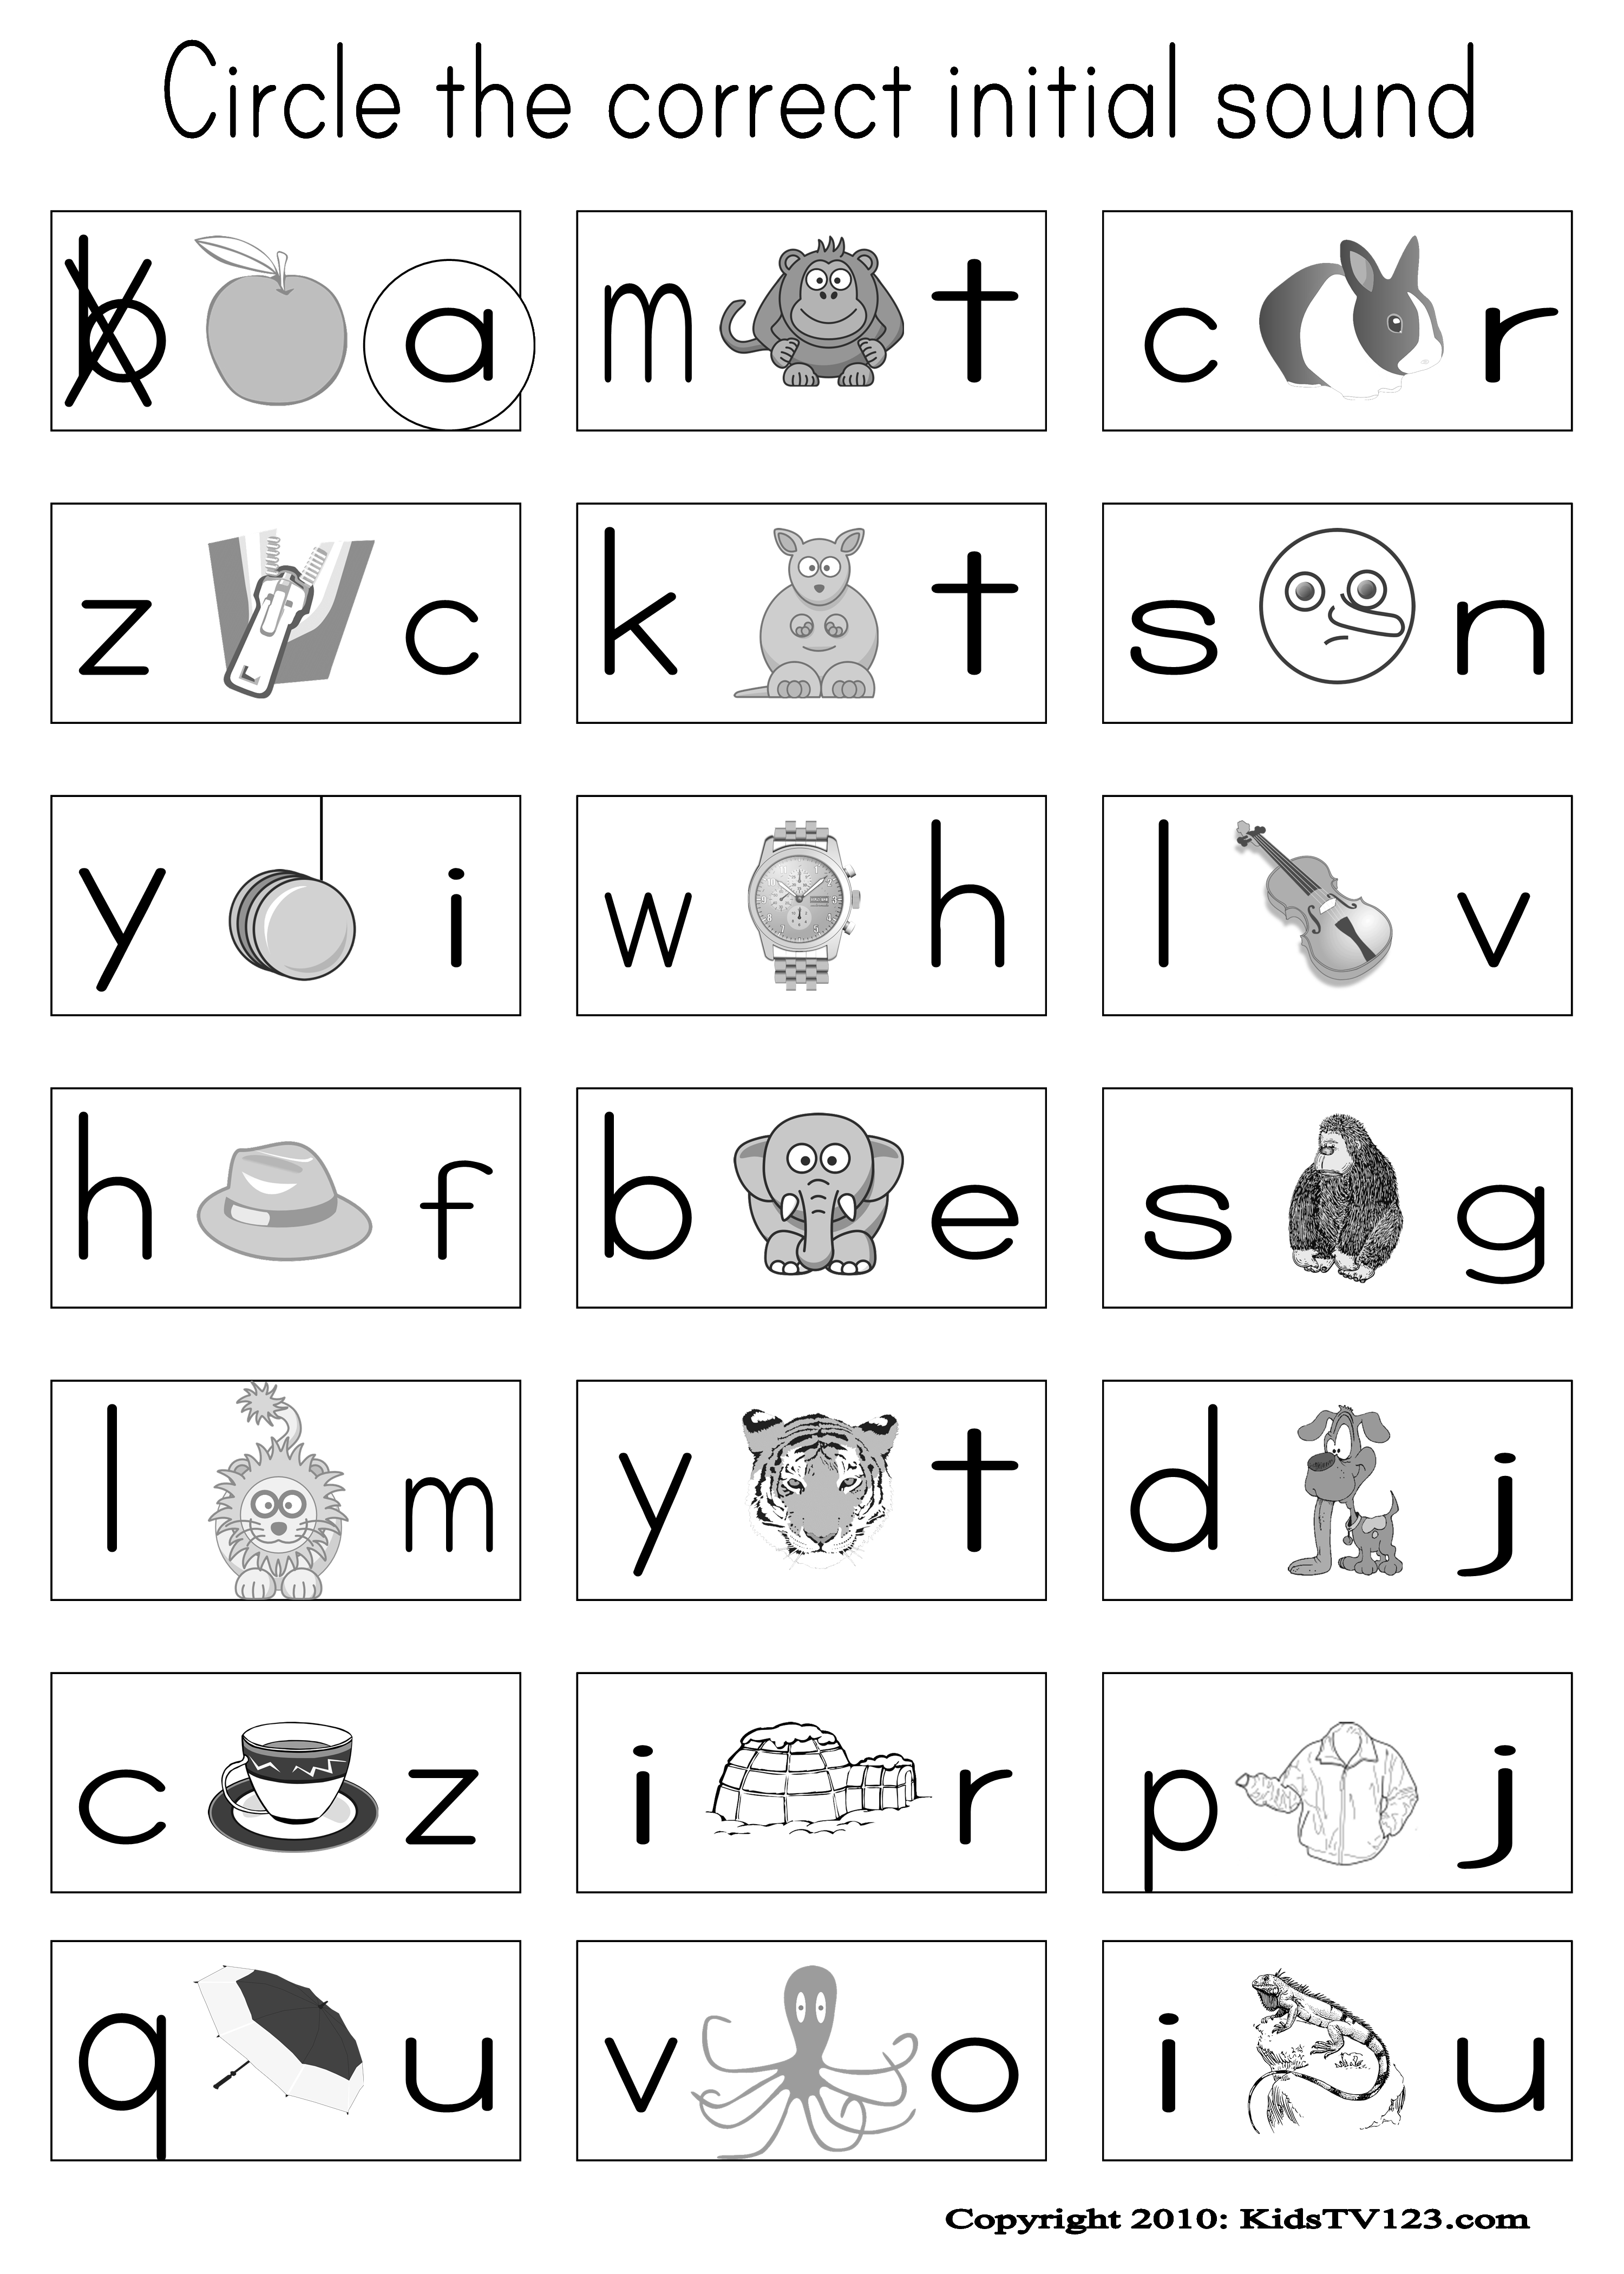 Worksheets Printable Vowel Worksheets kidstv123 com phonics worksheets classroom reading worksheets